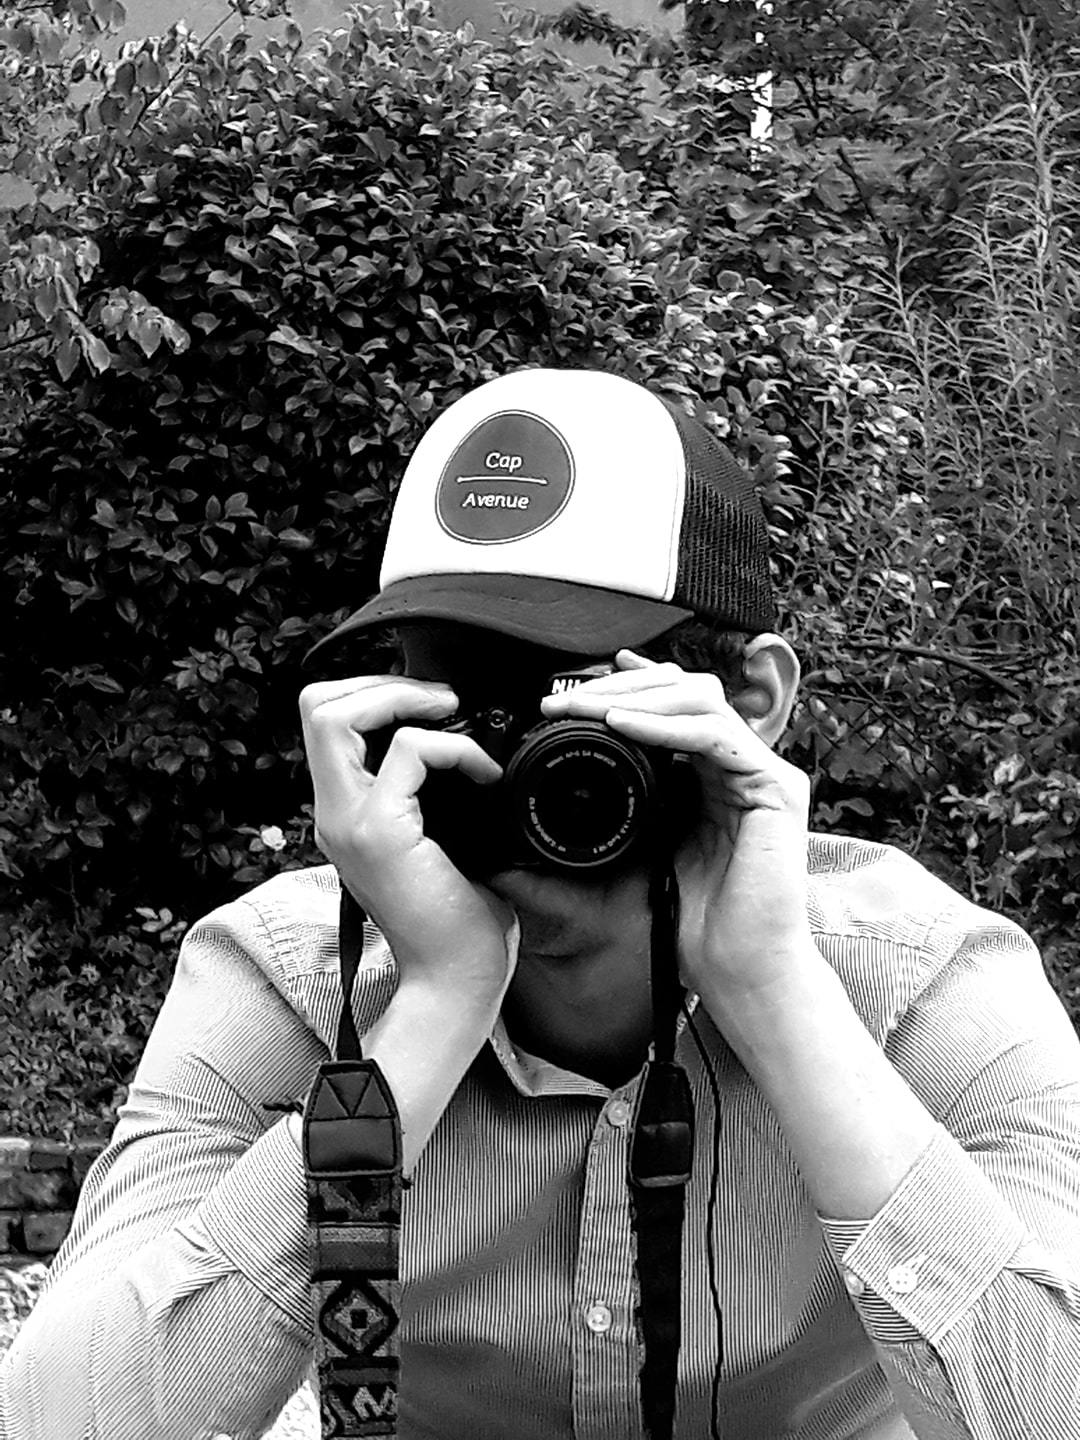 A person taking a photo and wearing a cap